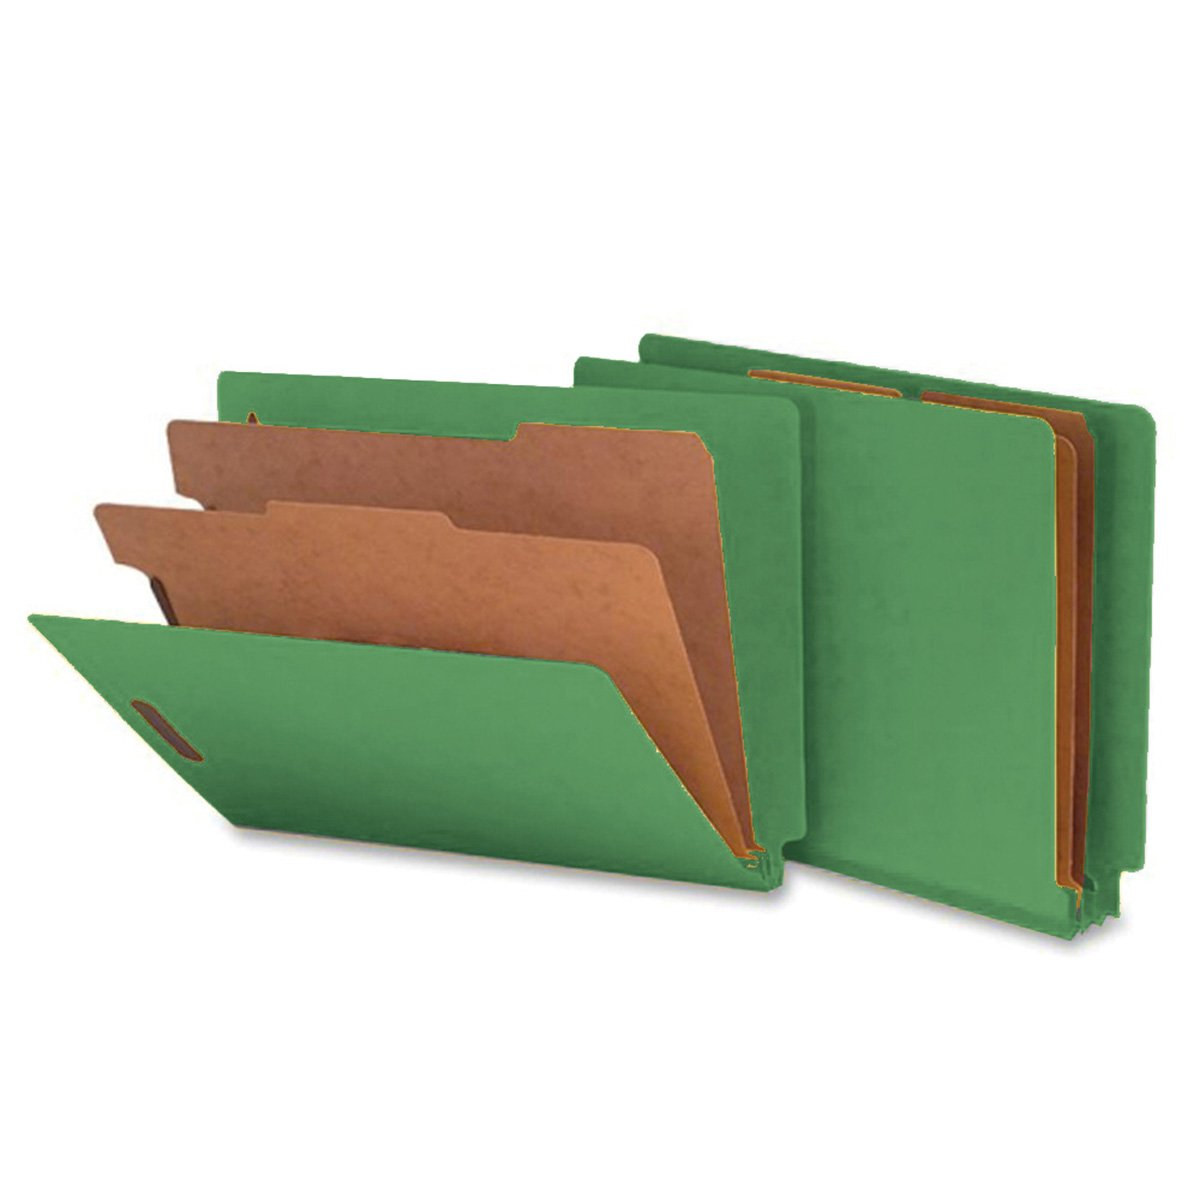 SMEAD ETC400-2D-GN5 End Tab Folder, FAS #1 and #3, 20Pt Pressboard, 2 Dividers, 2'' Expansion, 12 1/4'' x 9 1/2'', Green (Pack of 50)